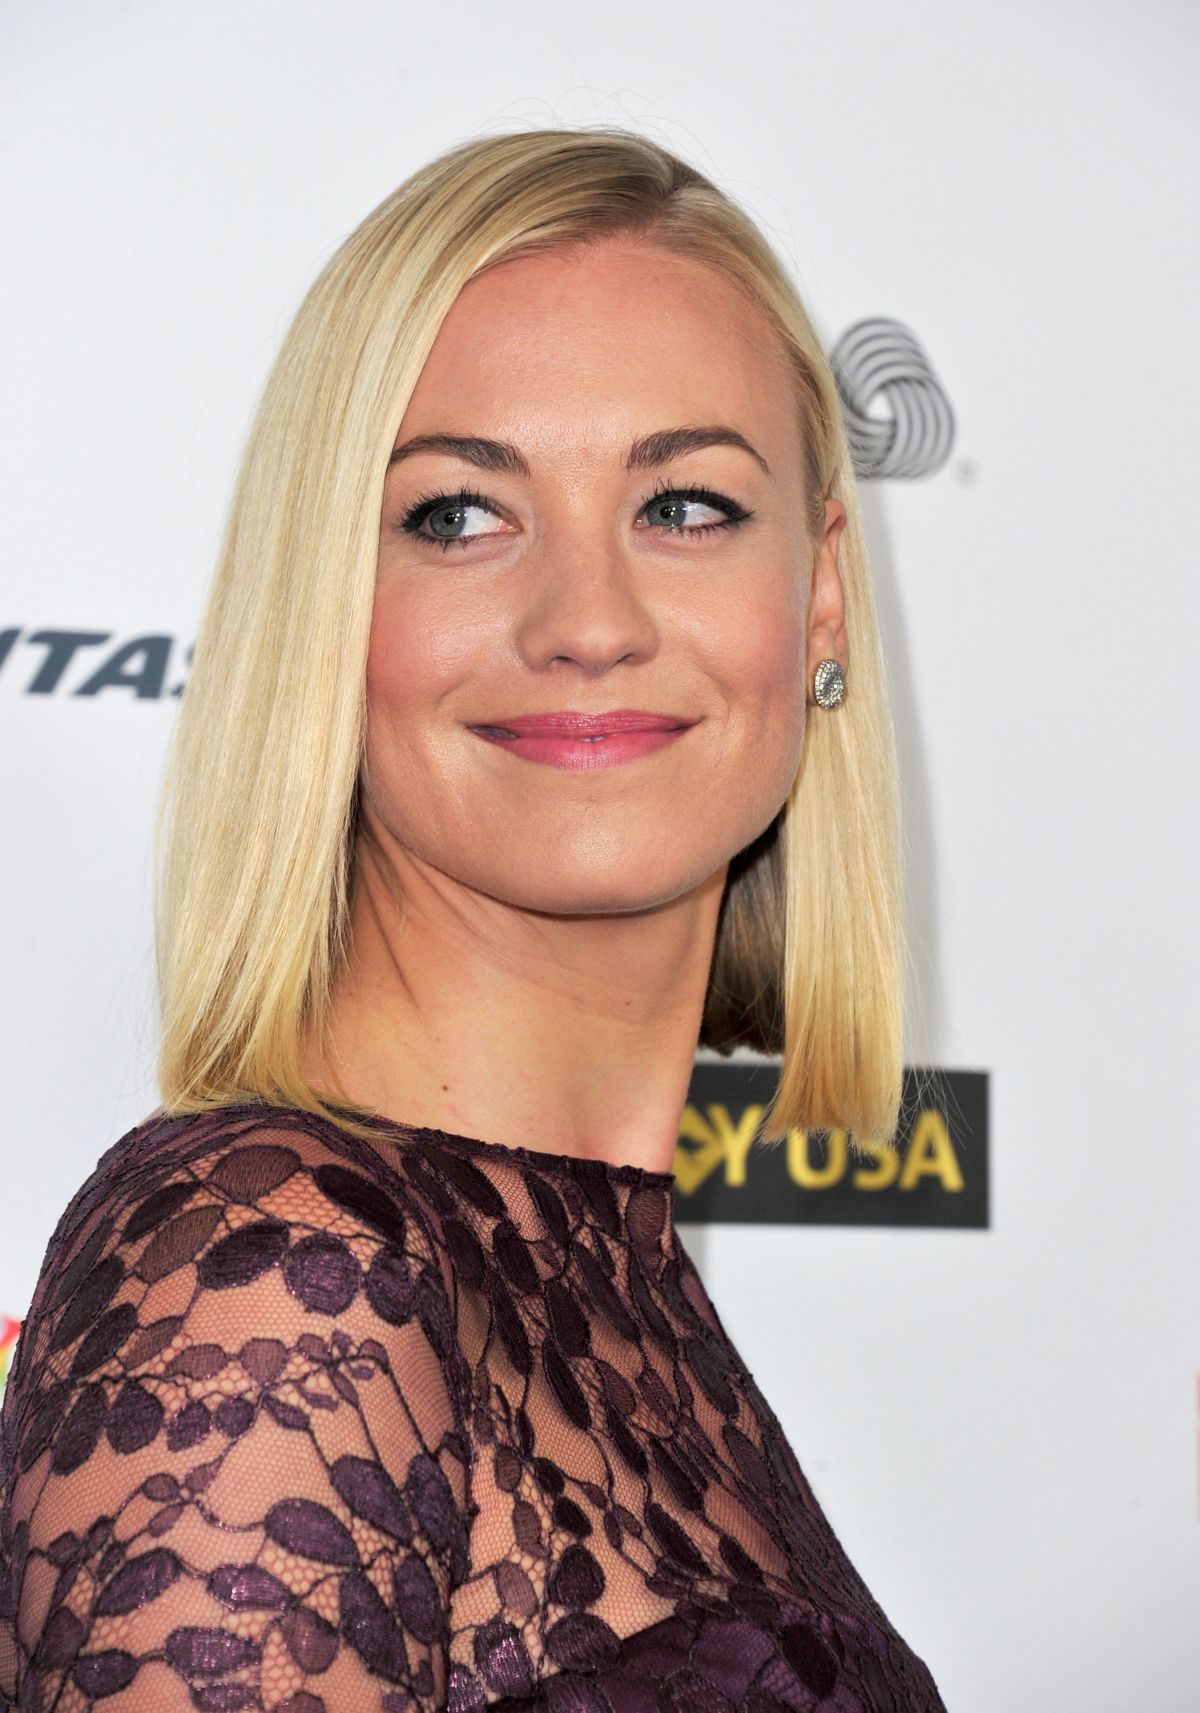 Super Hollywood: Yvonne Strahovski Profile, Pictures And